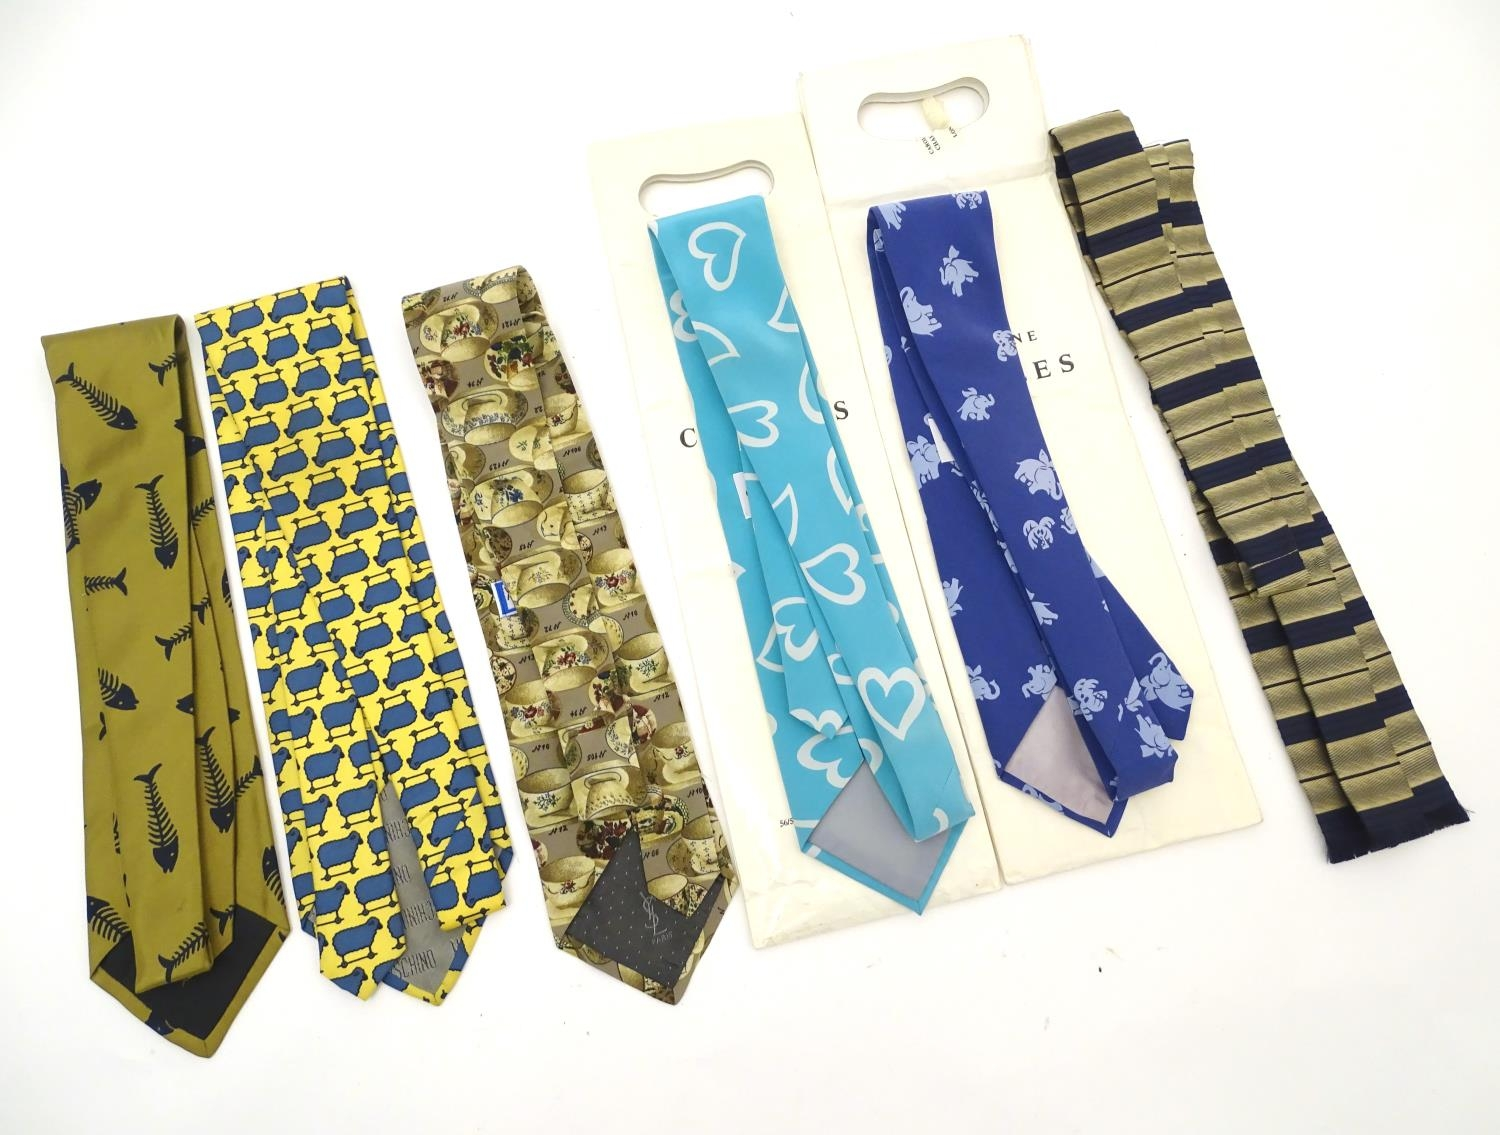 Vintage clothing/ fashion: 6 silk ties in various colours and patterns by Yves Saint Laurent, Nicole - Image 7 of 10